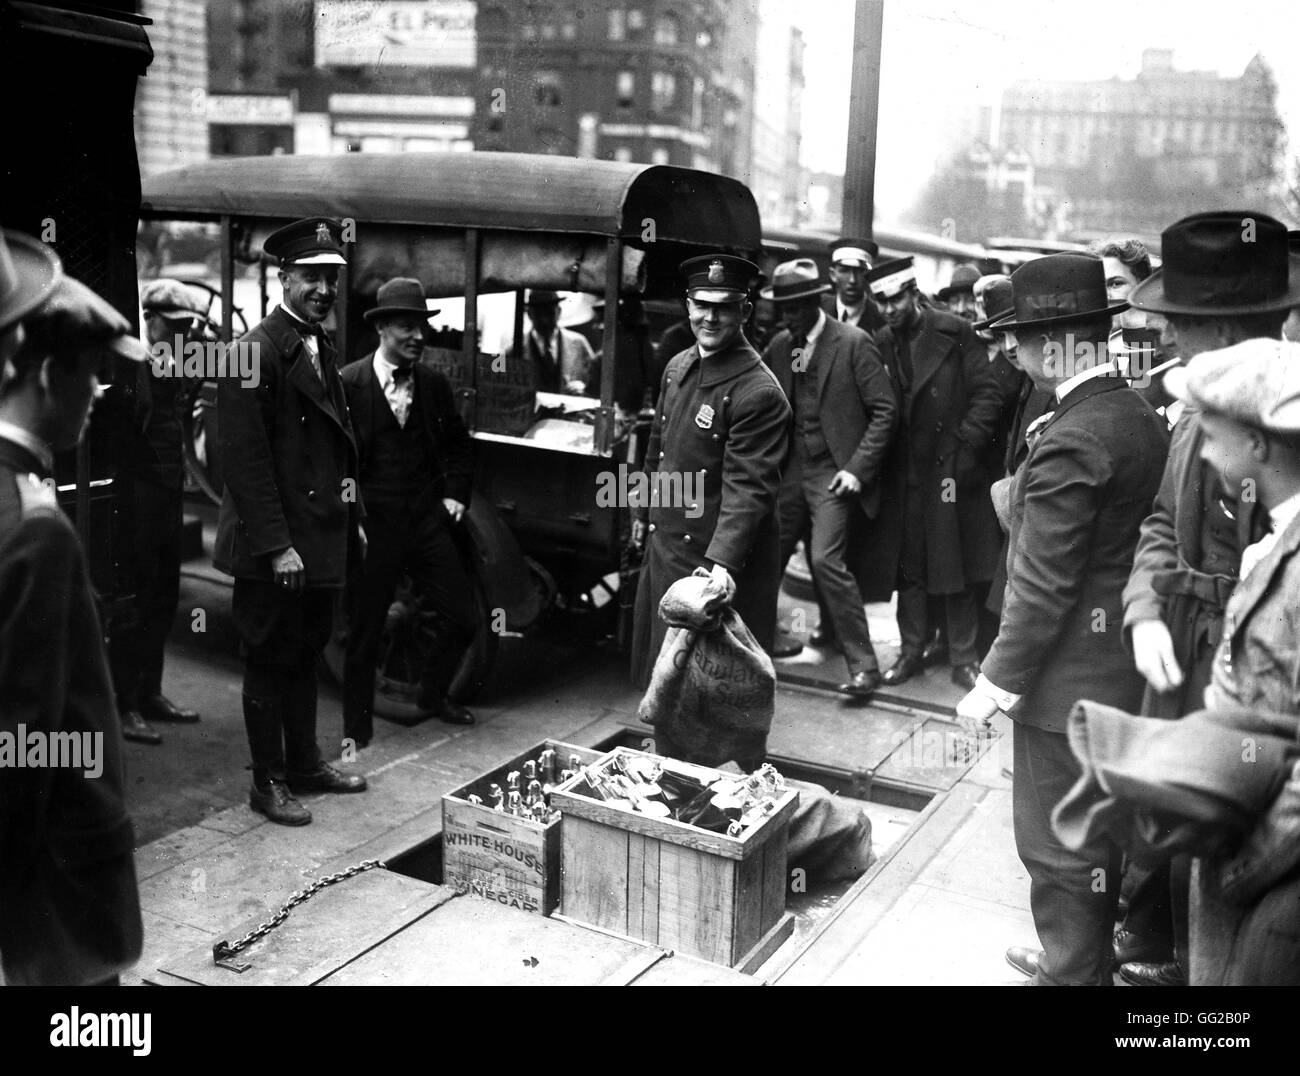 During the Prohibition: the police has seized bottles of alcohols and hide them in the government's cellar. - Stock Image